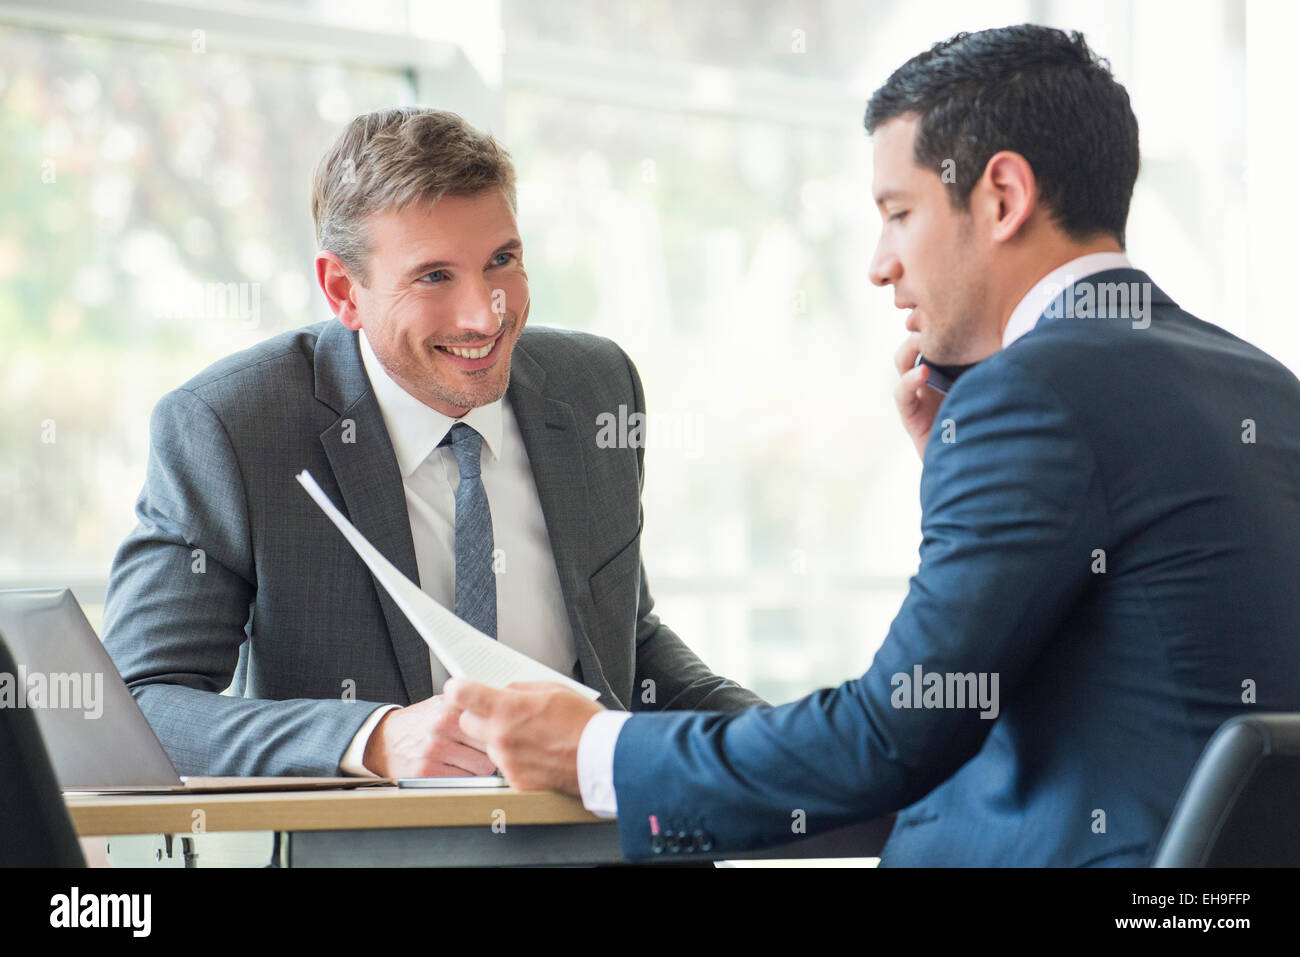 Businessmen discussing documents in meeting - Stock Image